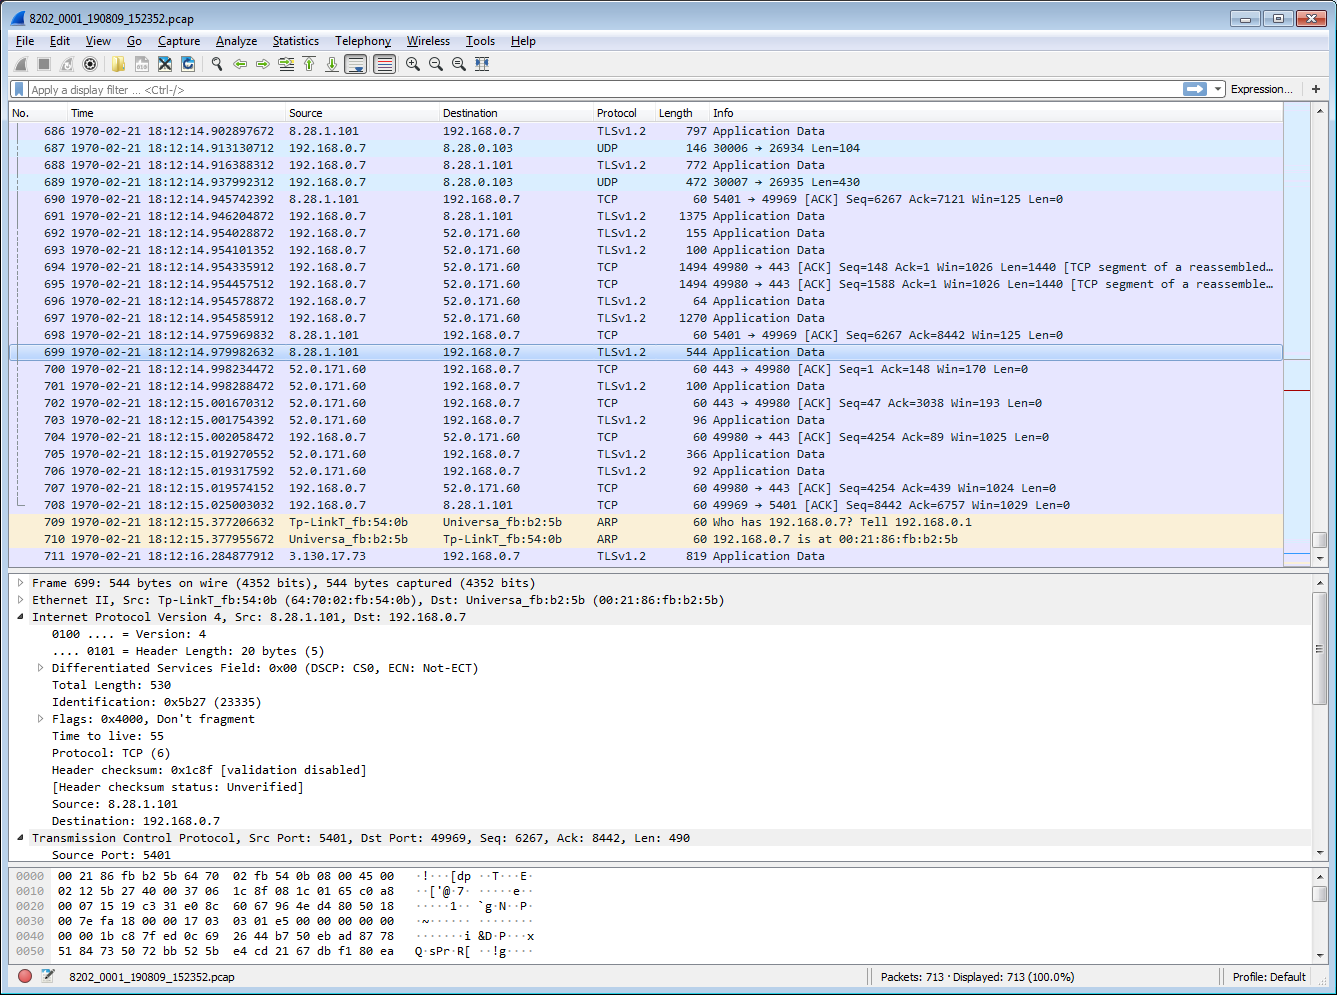 Wireshark Troubleshooting